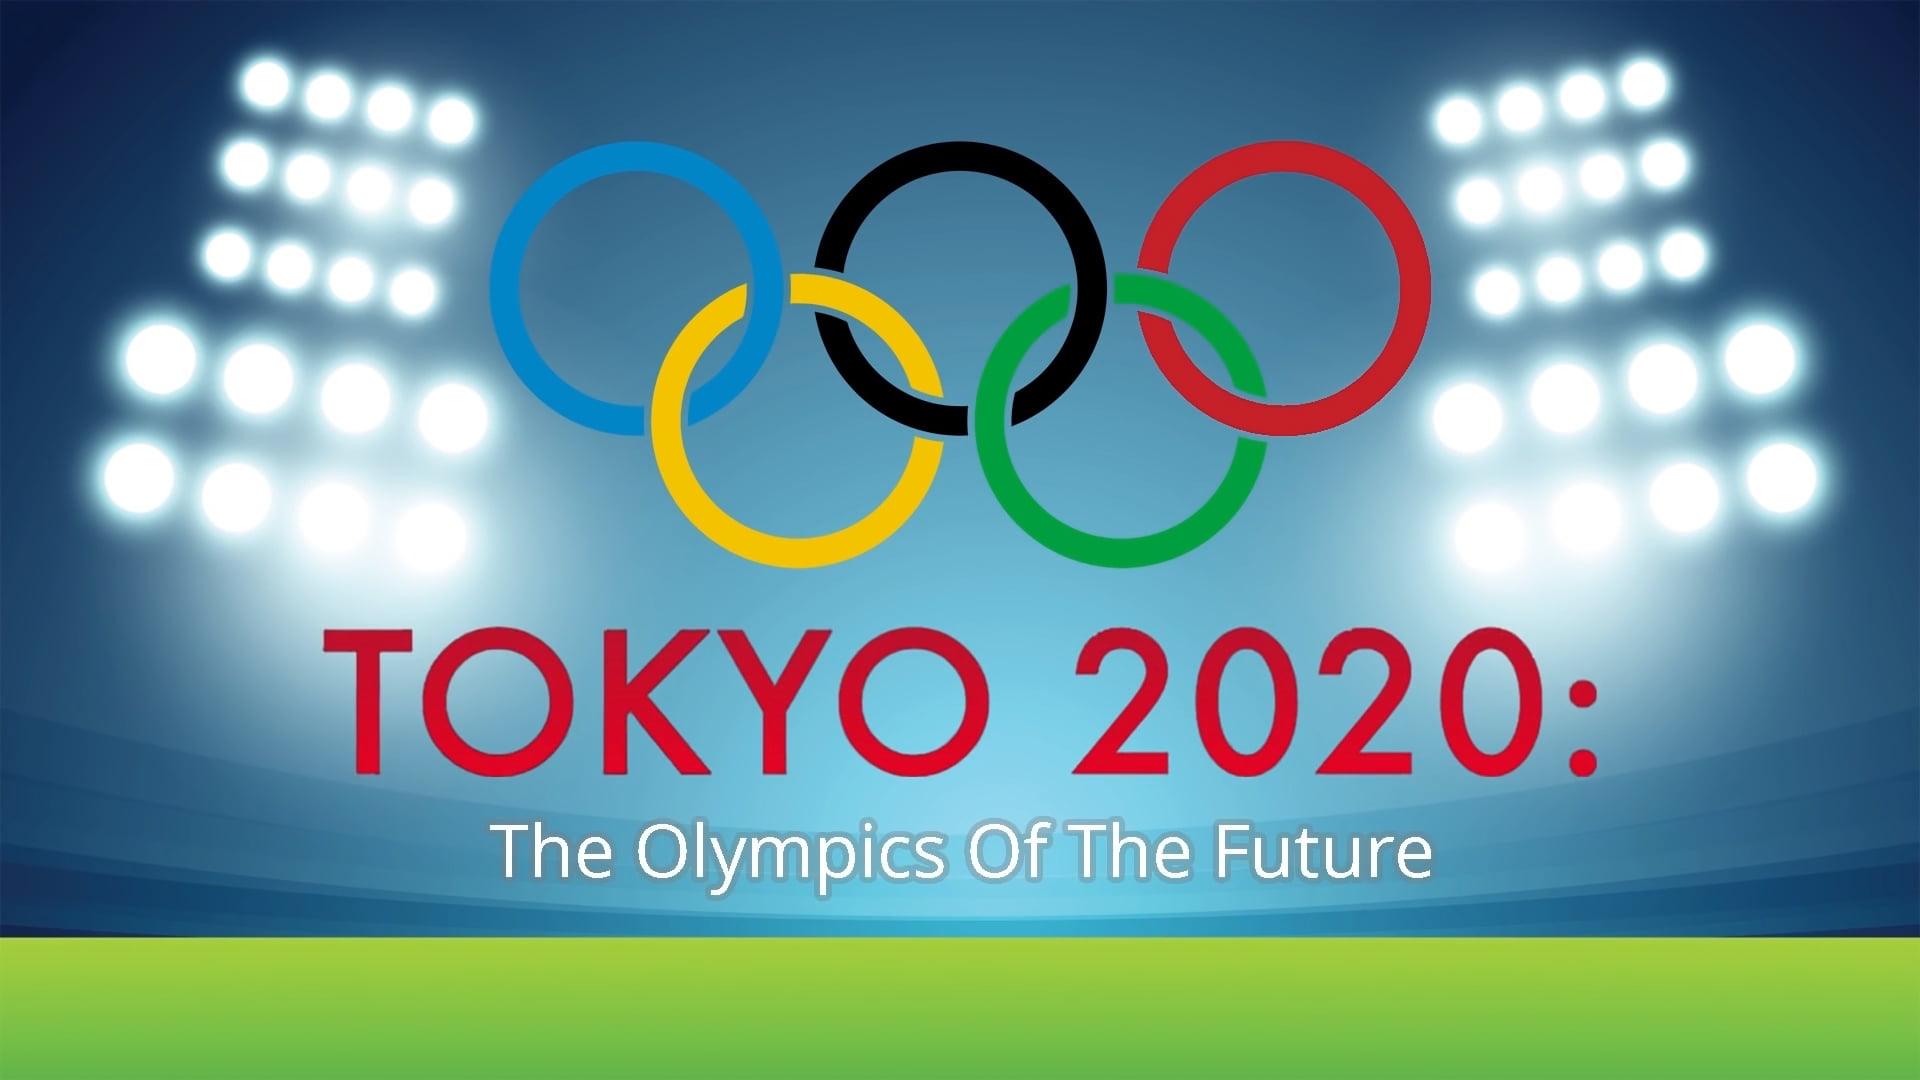 From Tokyo summer games to high-tech Olympics 2020 Tokyo